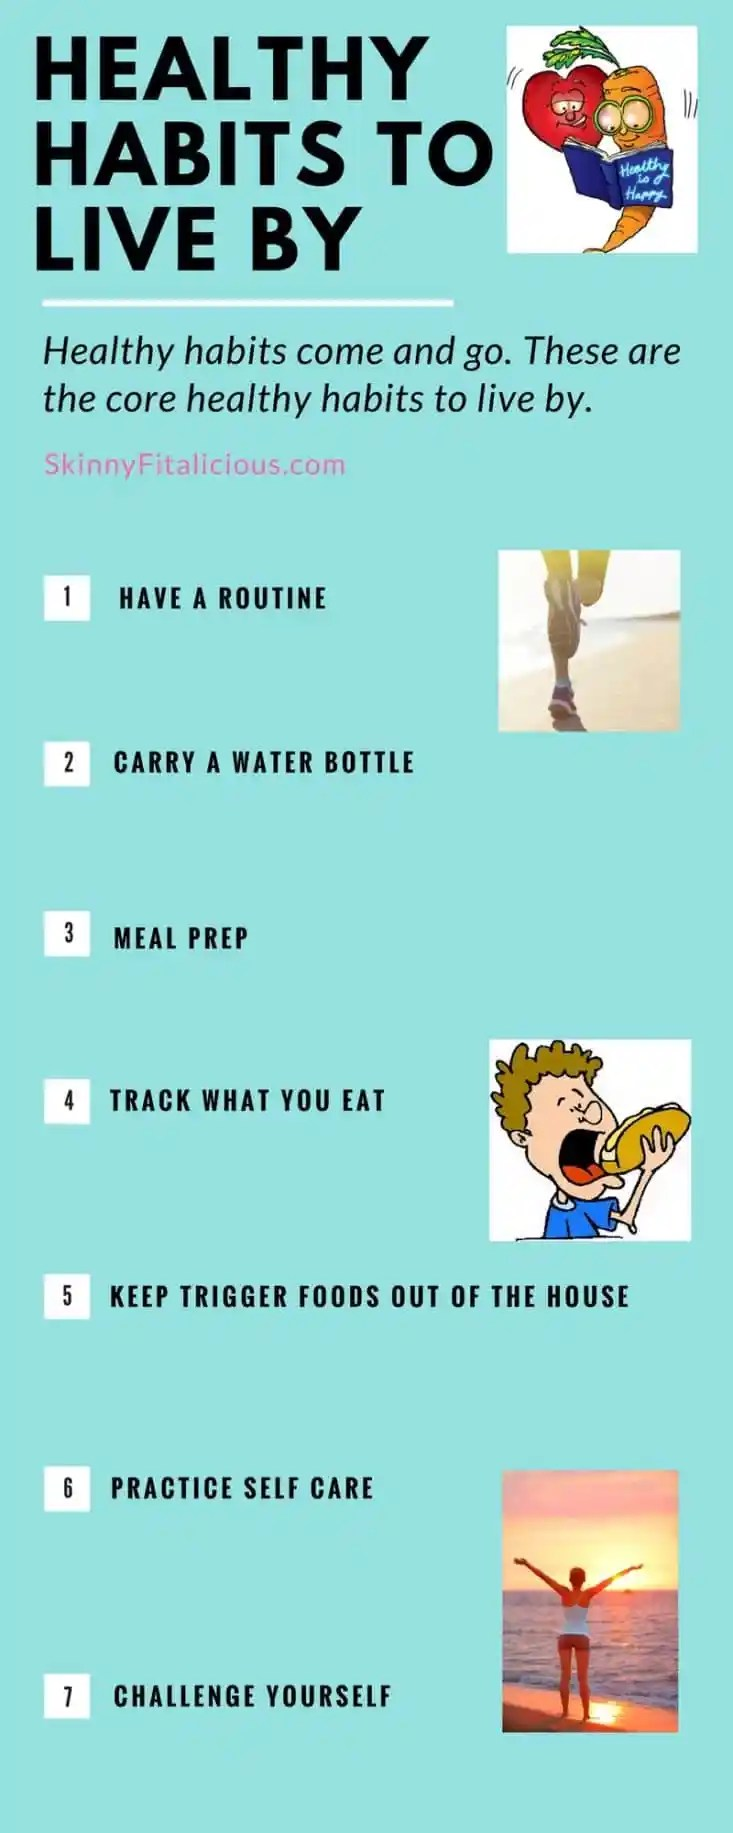 Over the years, I've built many healthy habits. While some have come and gone as I'm living beyond the scale, these are the healthy habits I live by.